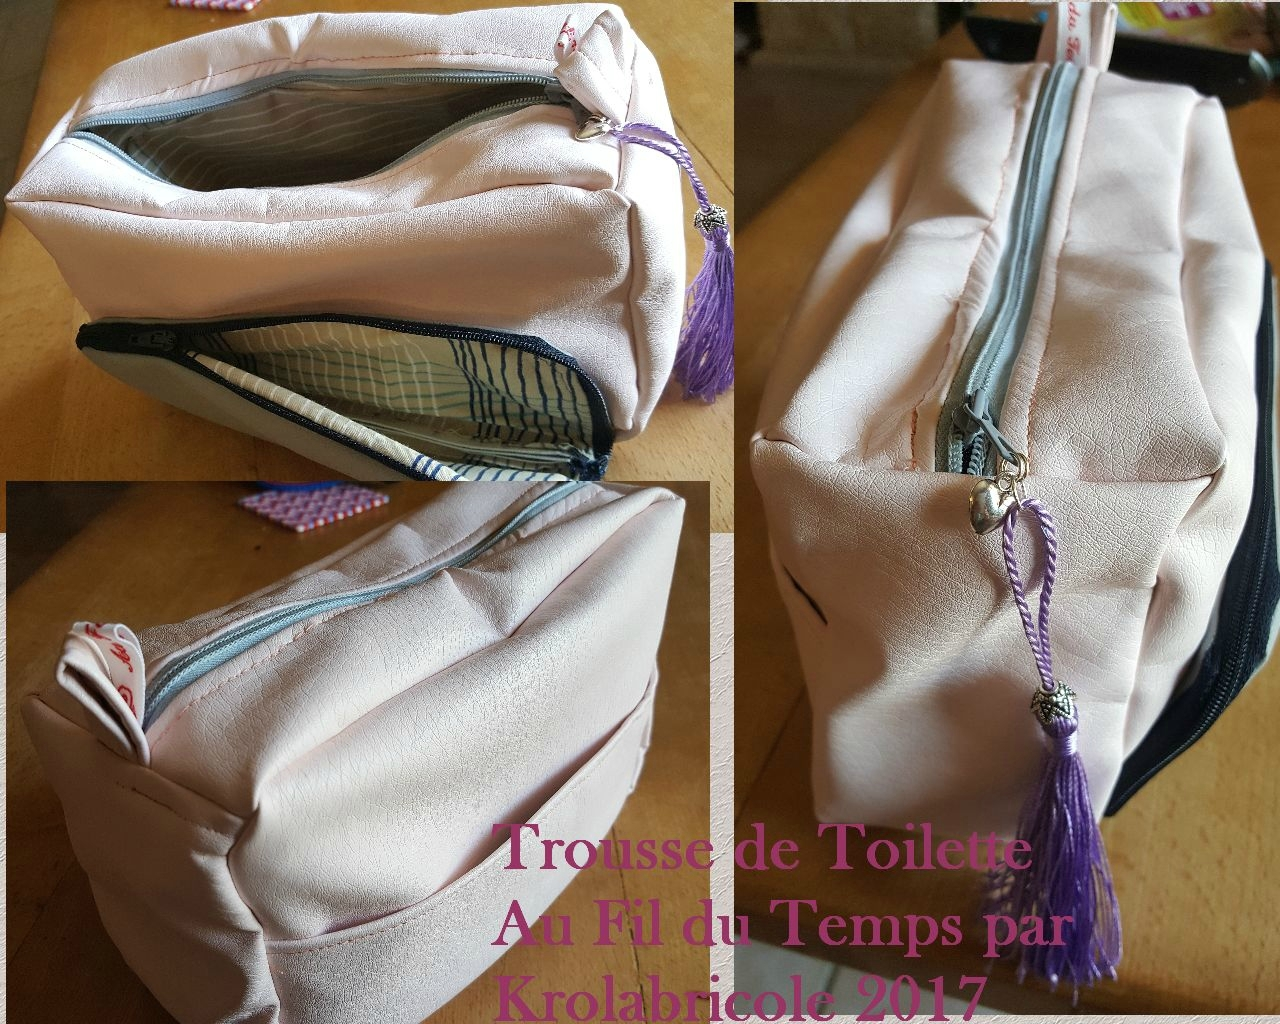 Trousse de Toilette DIY